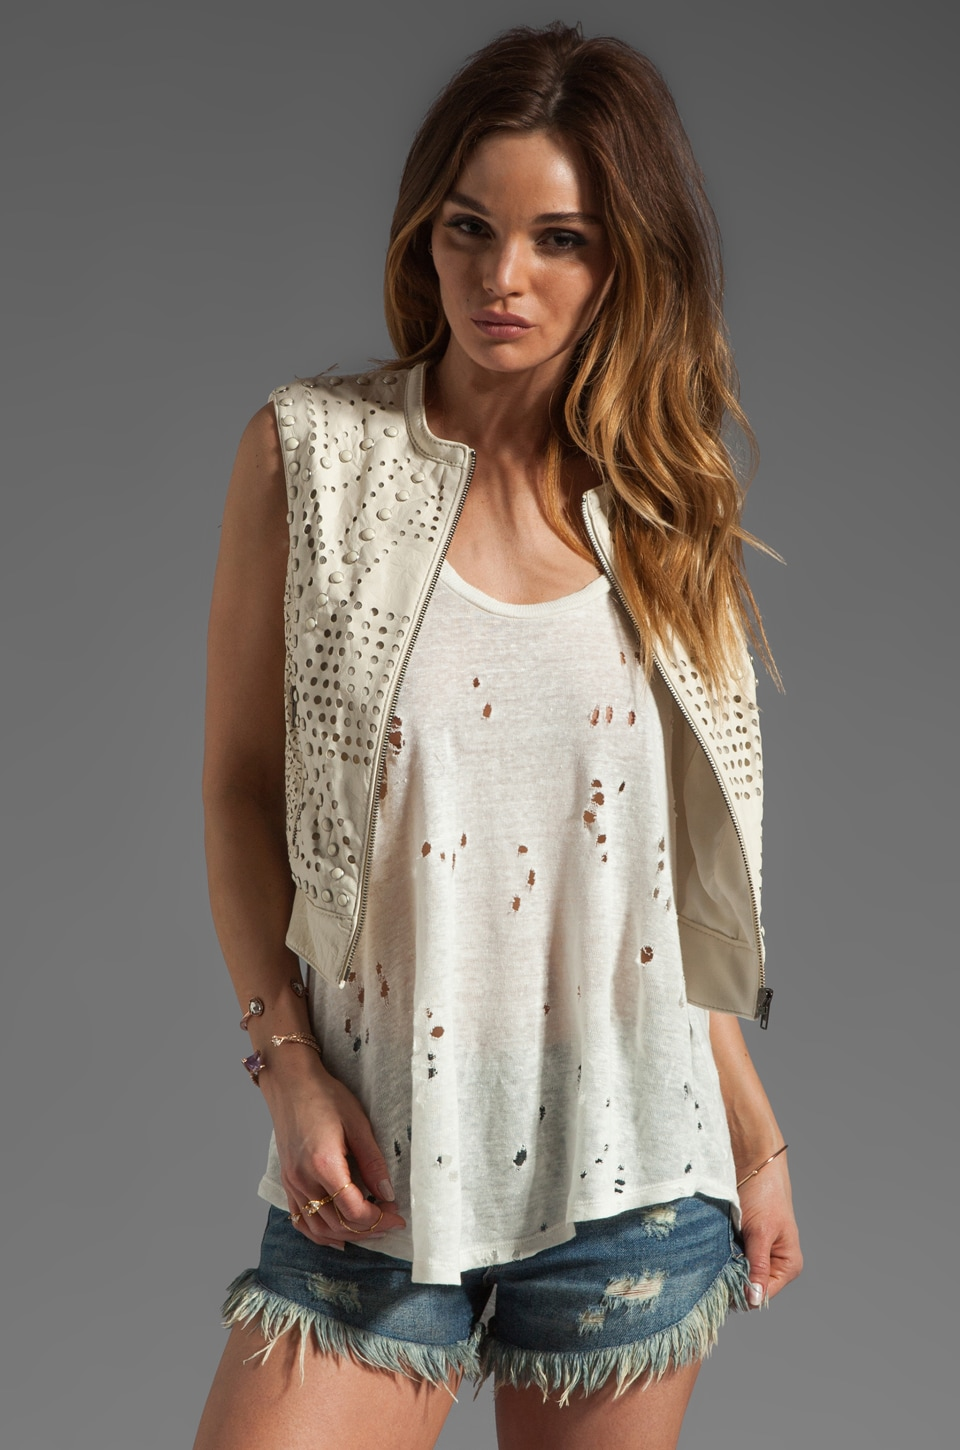 Catherine Malandrino Perforated Leather Vest in Ivory